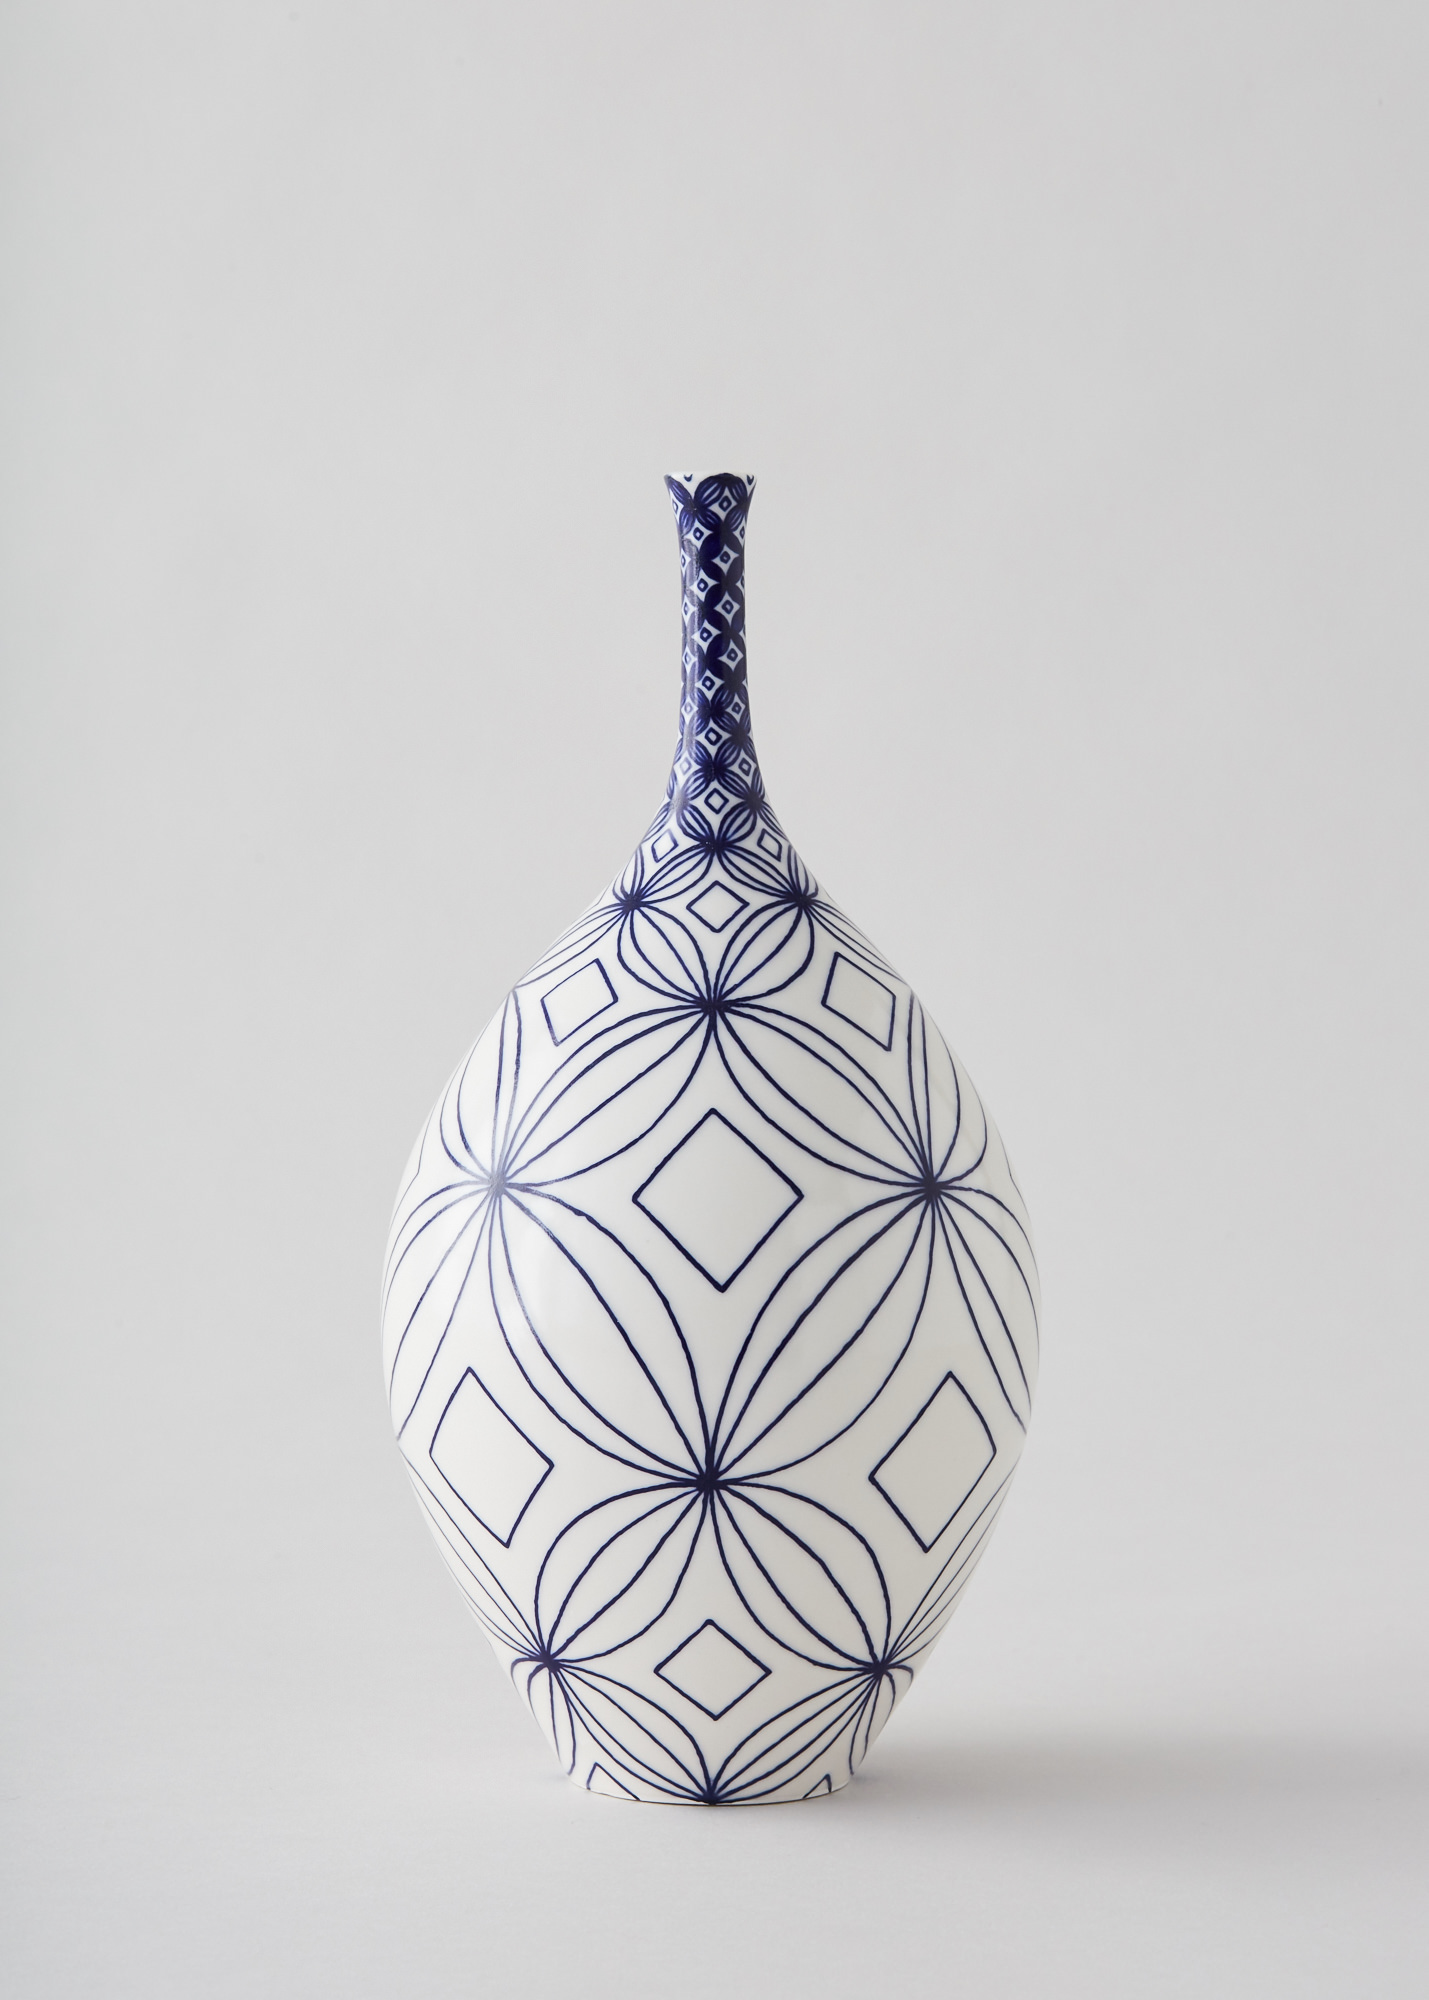 Rhian Malin  Frangipani Bottle  £85  ceramic